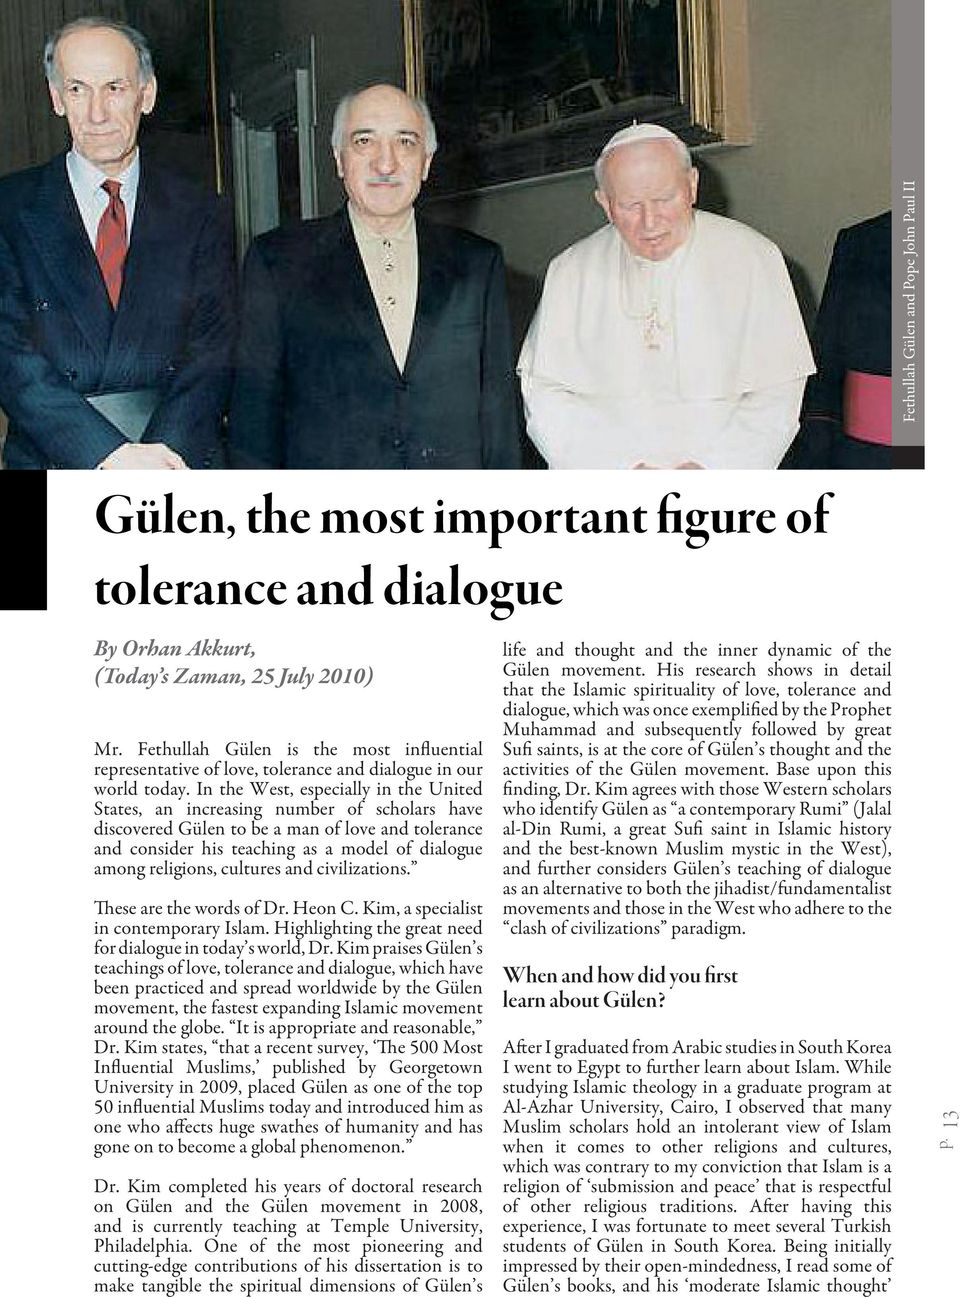 In the West, especially in the United States, an increasing number of scholars have discovered Gülen to be a man of love and tolerance and consider his teaching as a model of dialogue among